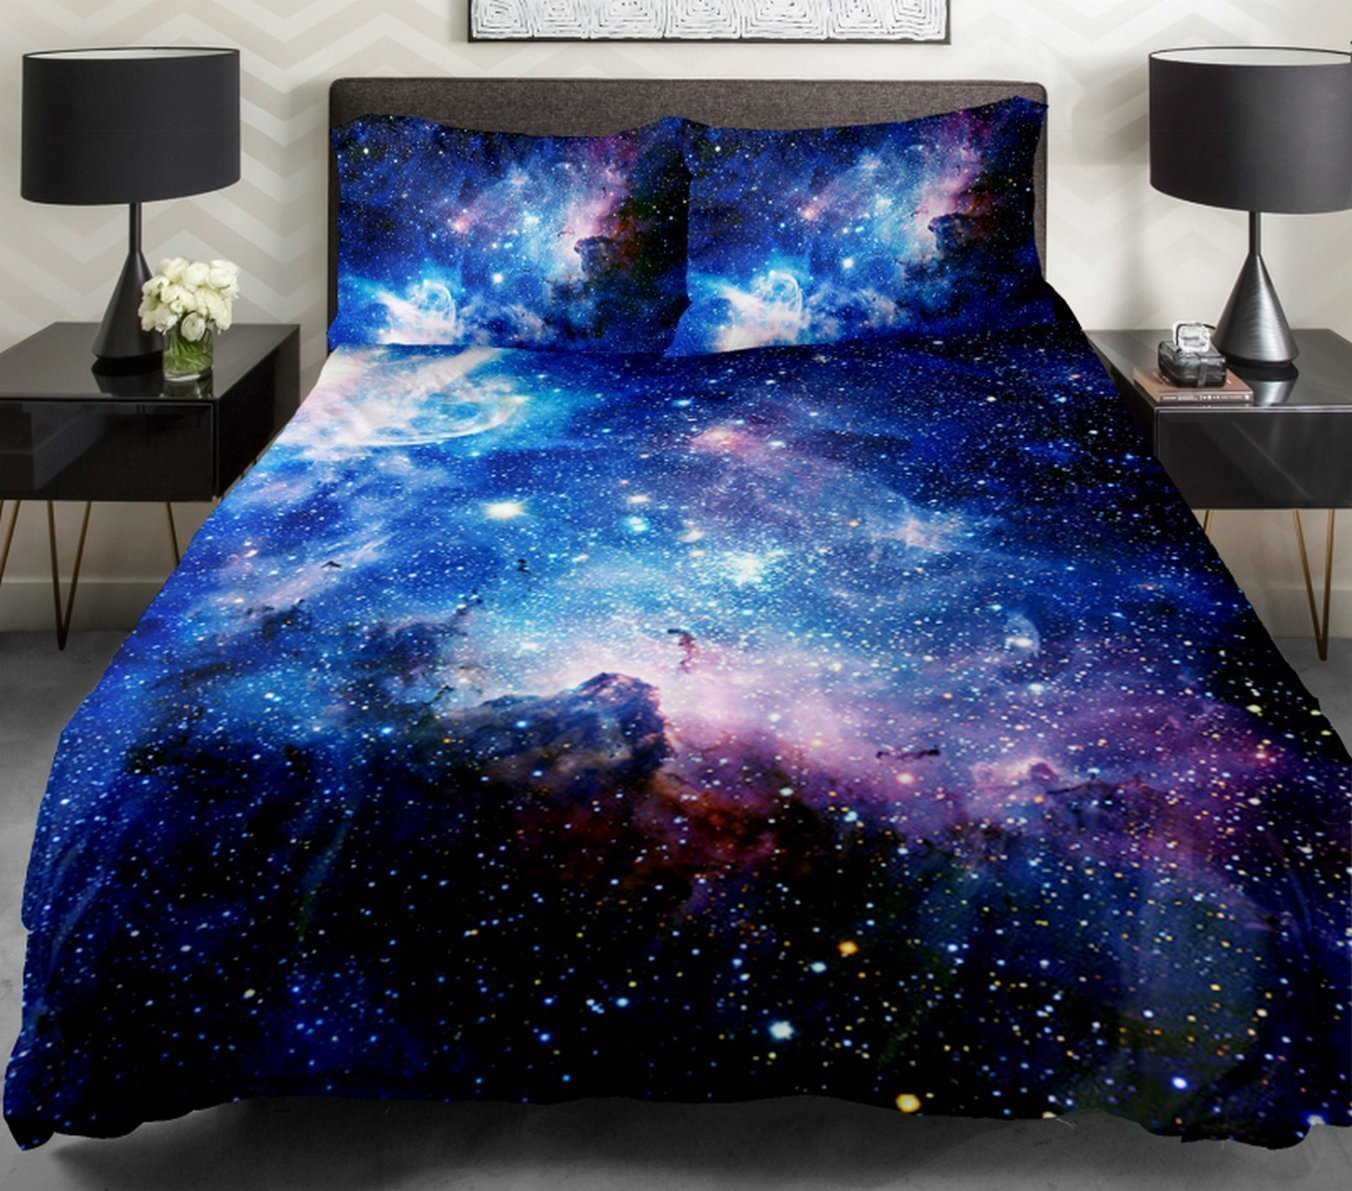 Anlye 4PCS Full Size Galaxy Bedding Sets Cotton Bedroom Set With 1 Cotton Sheet 1 Galaxy Duvet Cover 2 Pillowcase for Full Comforter,Best Gift Ideas